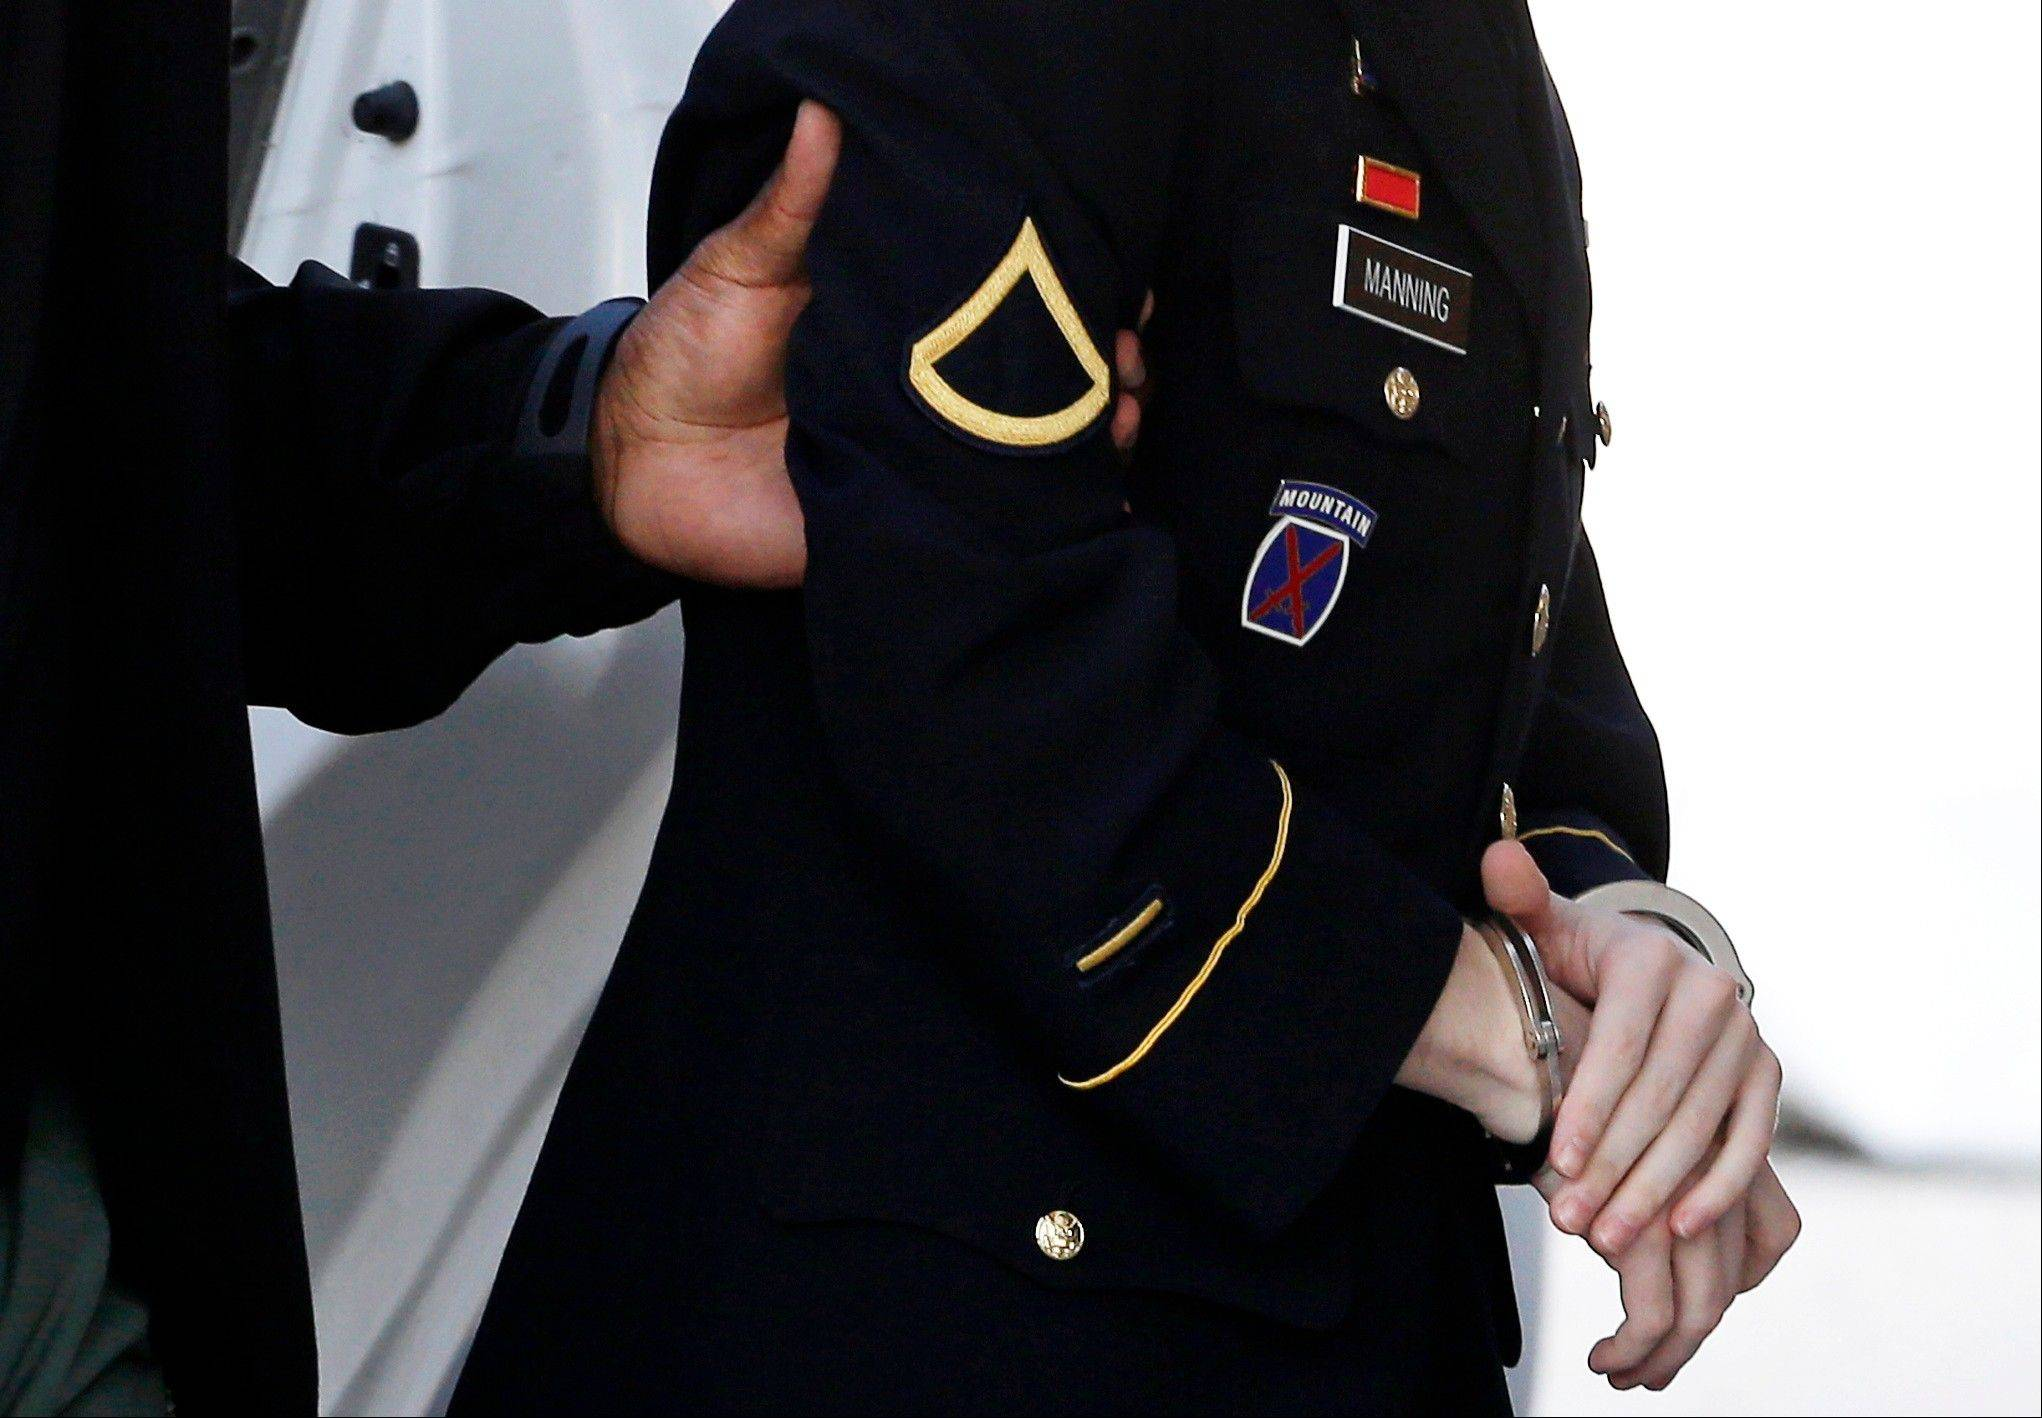 Army Pfc. Bradley Manning is escorted into a courthouse in Fort Meade, Md., Tuesday, Aug. 20, 2013, before a hearing in his court martial. A military judge began deliberating Army Pfc. Bradley Manning�s sentence Tuesday for disclosing reams of classified information through WikiLeaks.